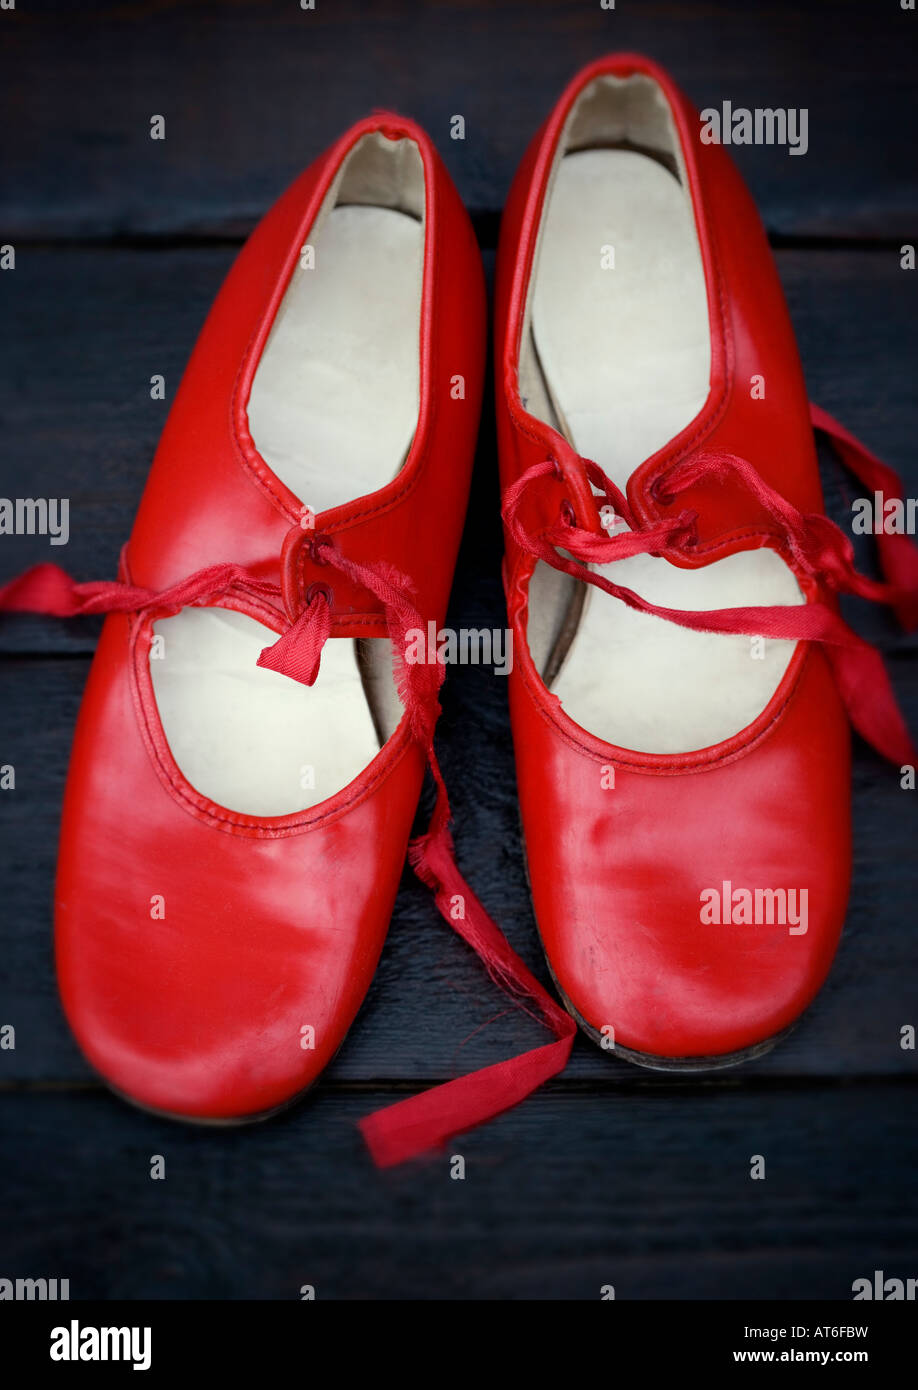 A pair of vintage red tap shoes shot against polished dark wooden floor boards - Stock Image